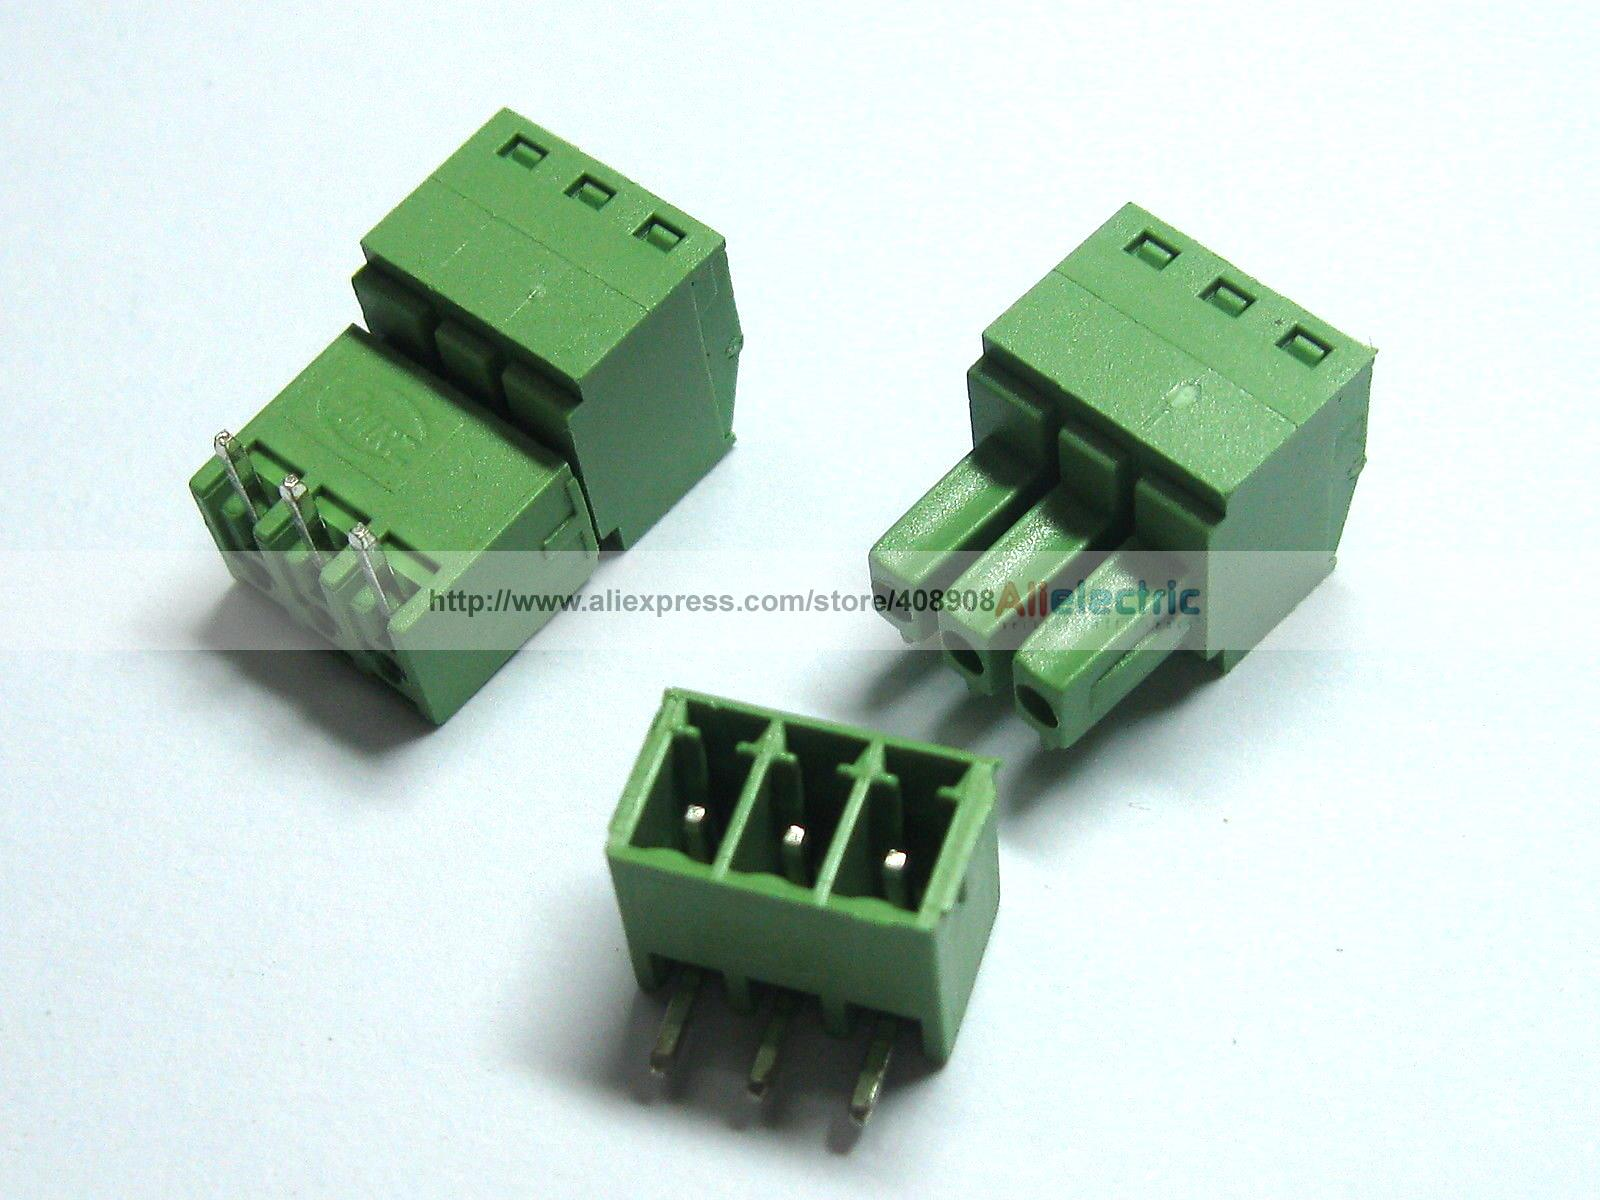 150 Pcs Screw Terminal Block Connector 3.5mm Angle 3 Pin Green Pluggable Type 30 pcs screw terminal block connector 3 81mm 12 pin green pluggable type